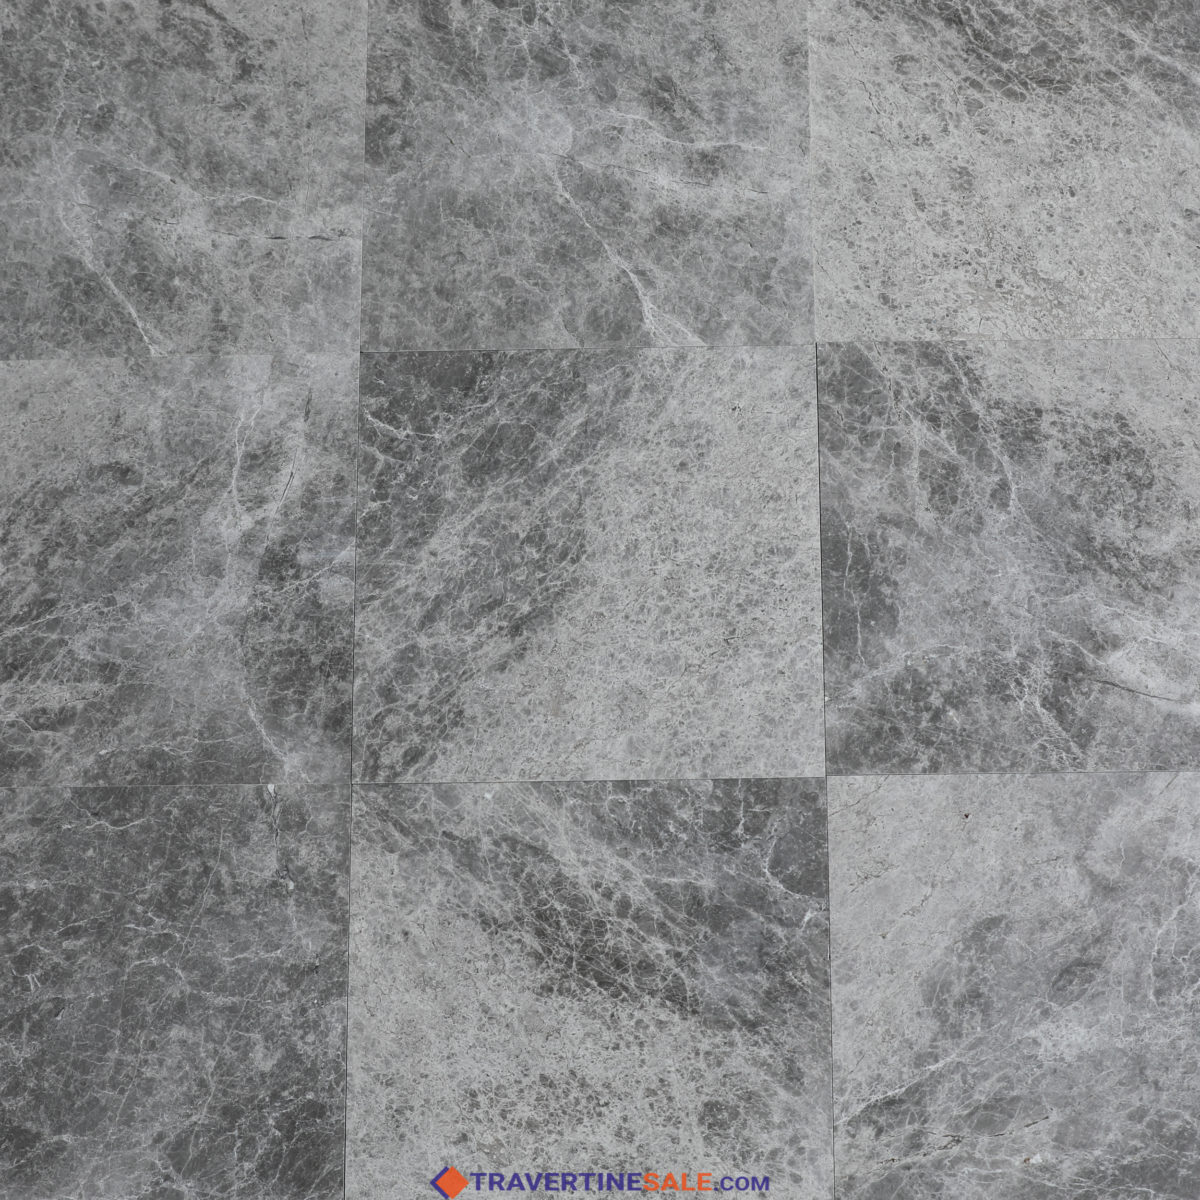 tundra gray marble polished tile surface with gray and silver colors